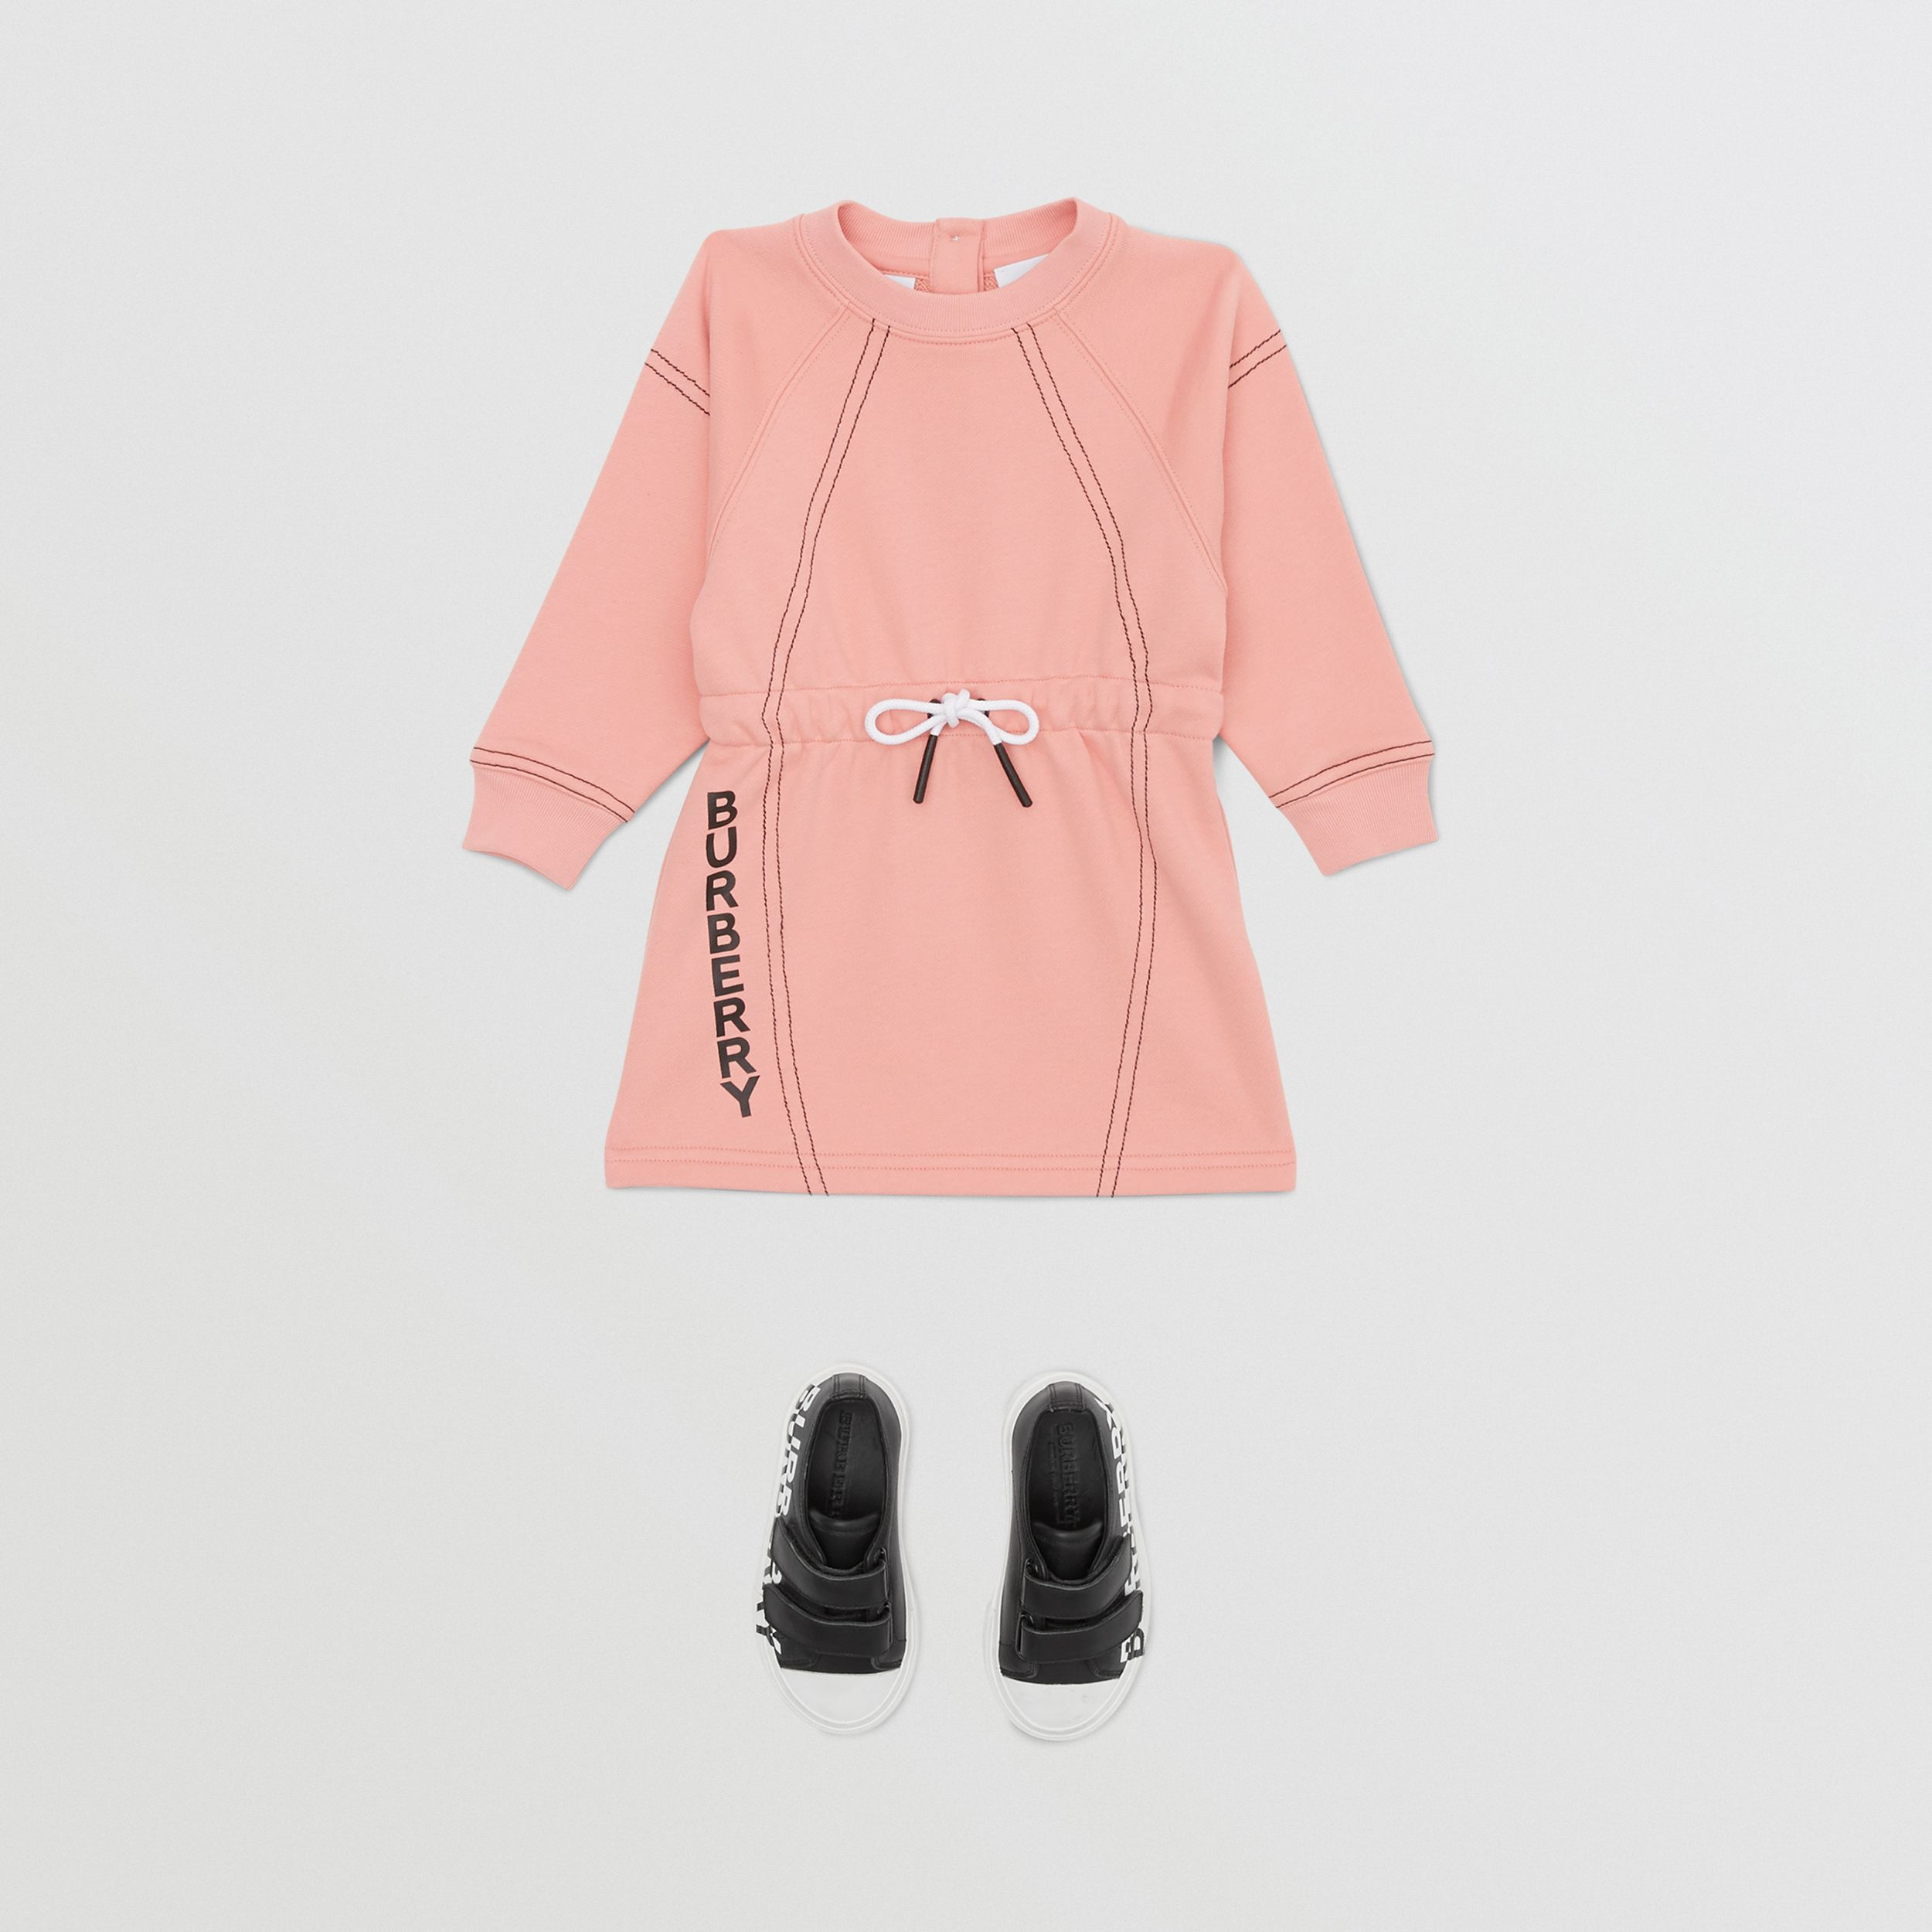 Logo Print Cotton Sweater Dress in Peach - Children | Burberry Canada - 3